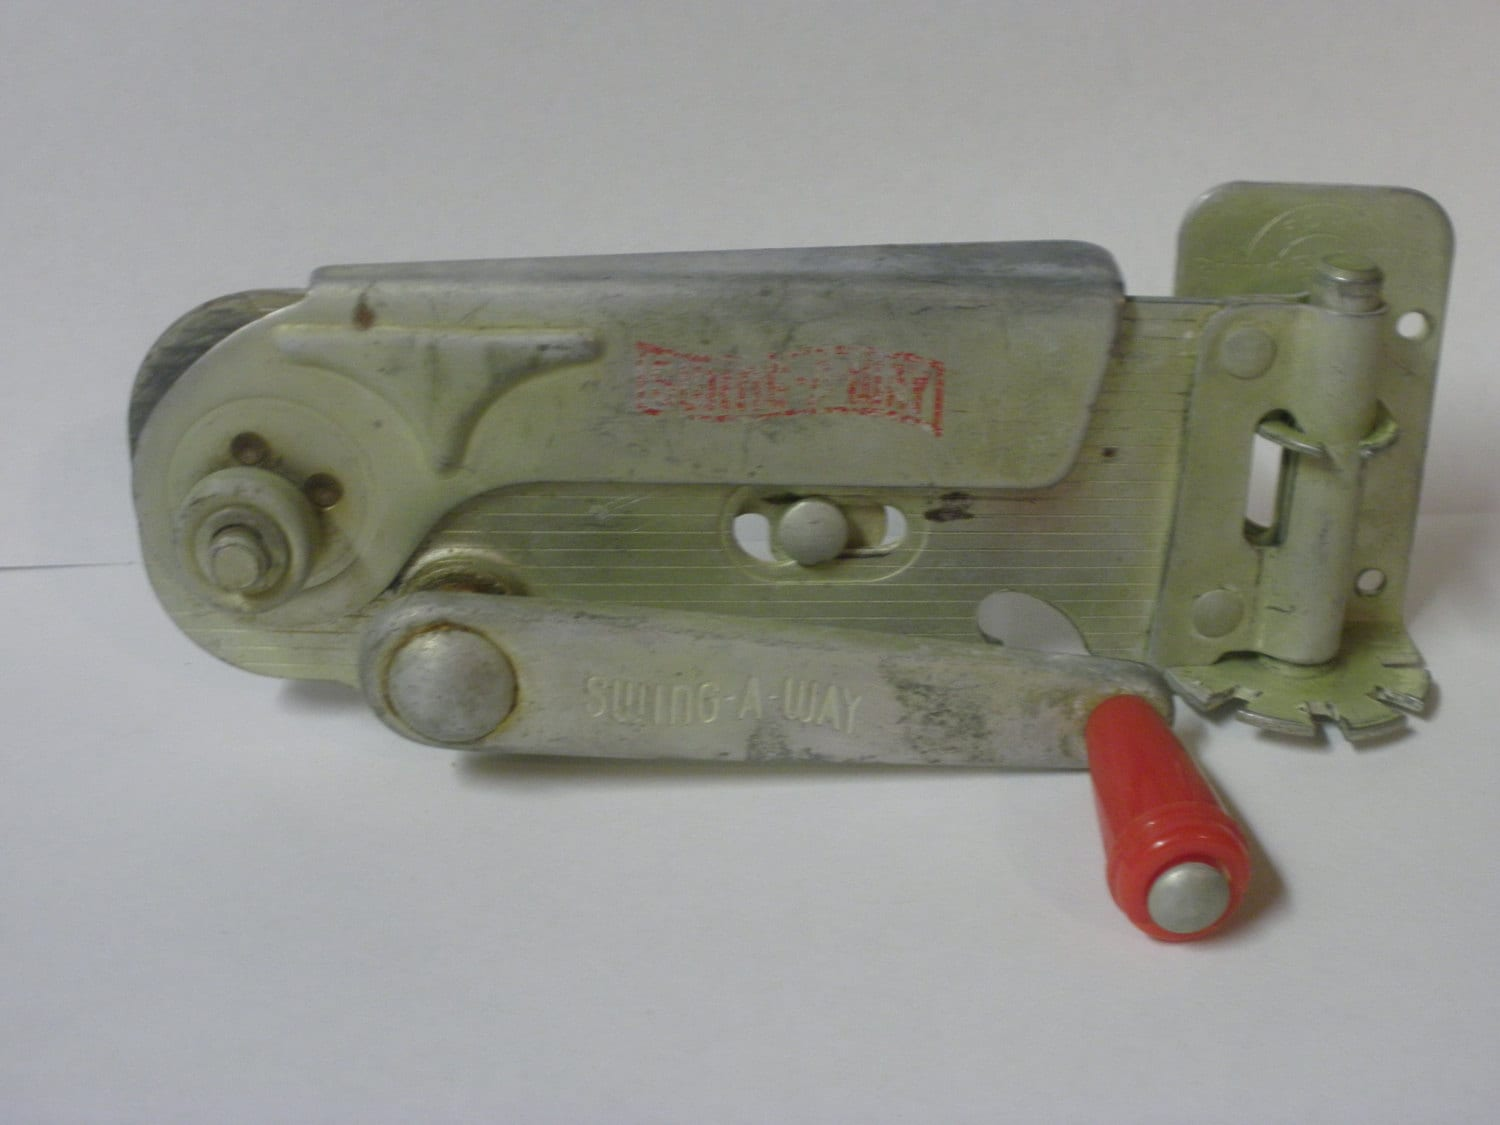 Vintage swing away can opener